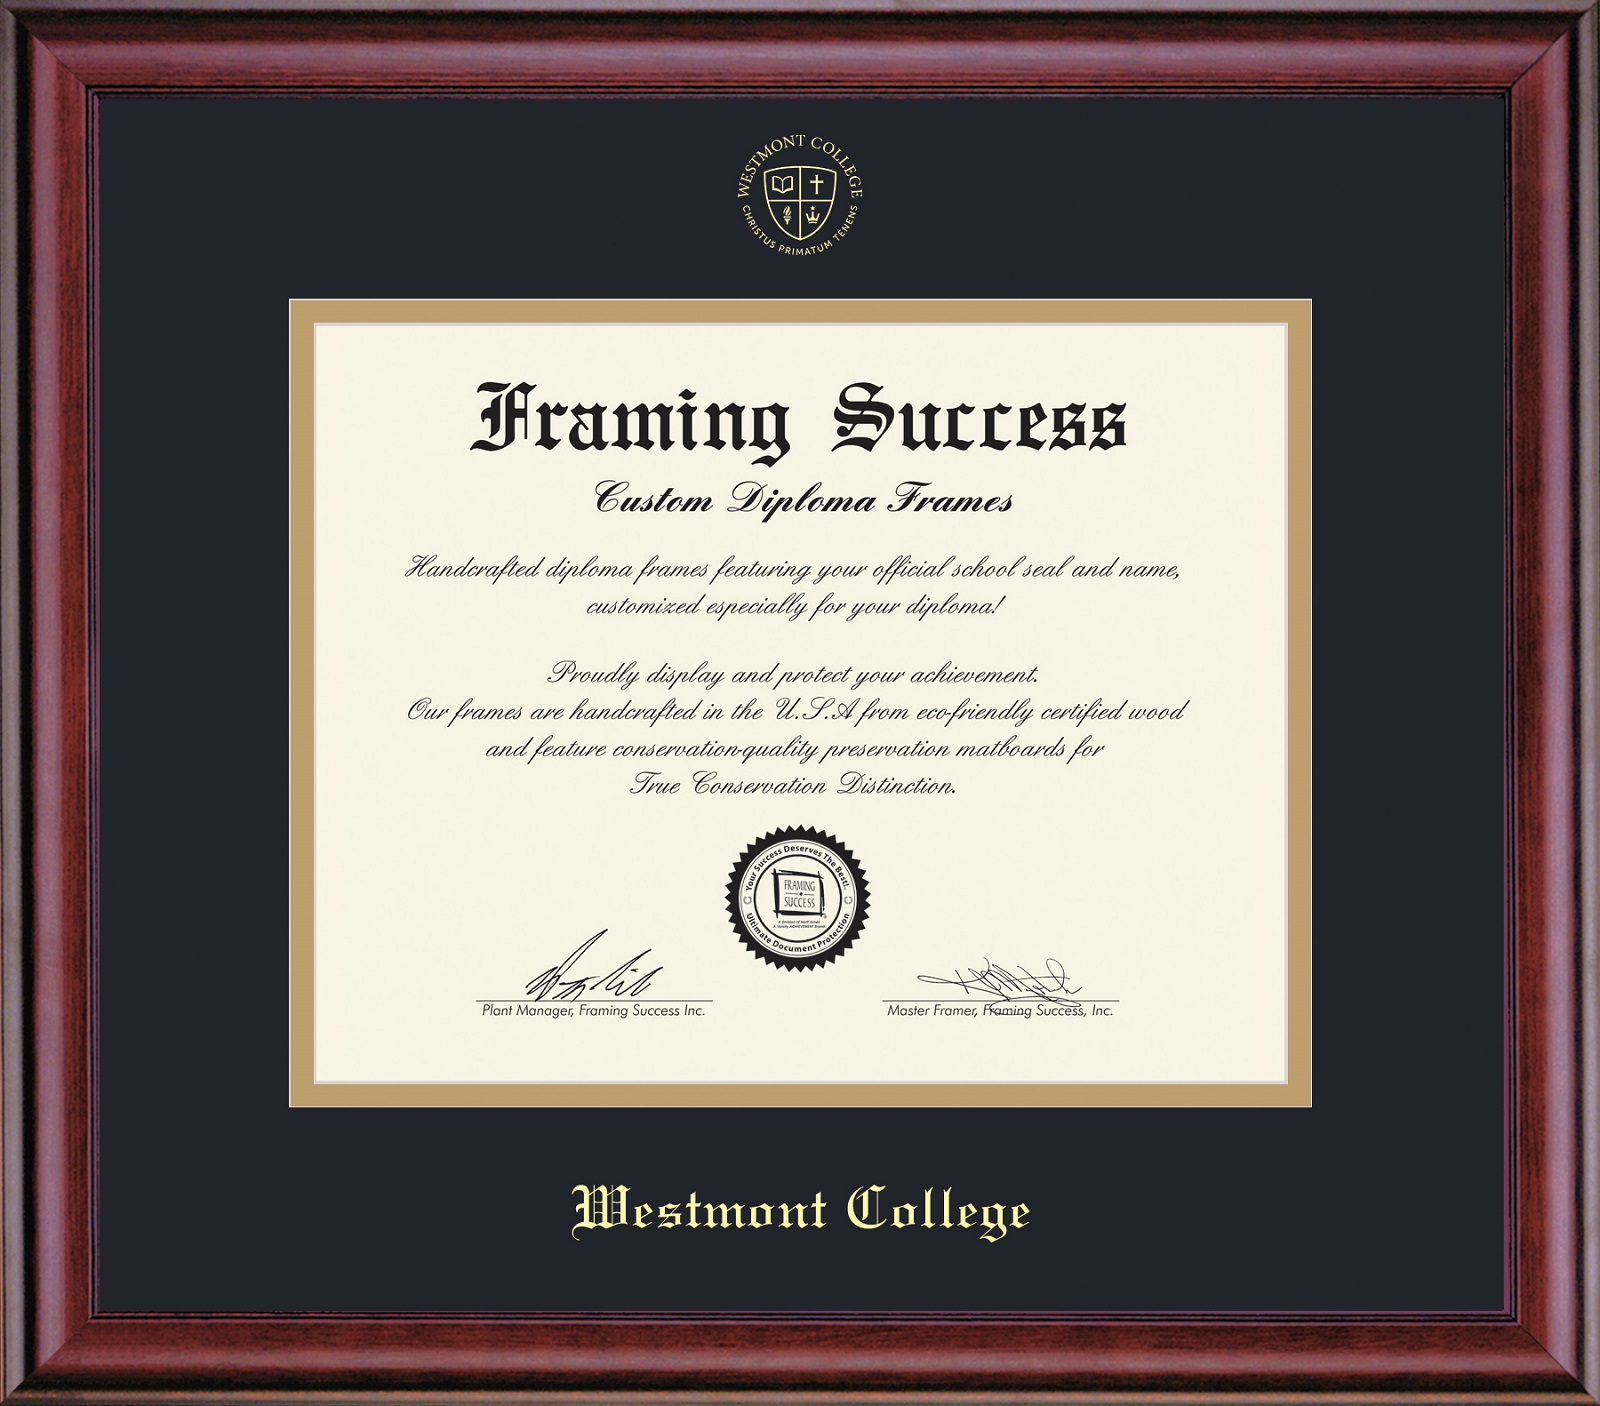 Image for the Framing Success Diploma Frames product